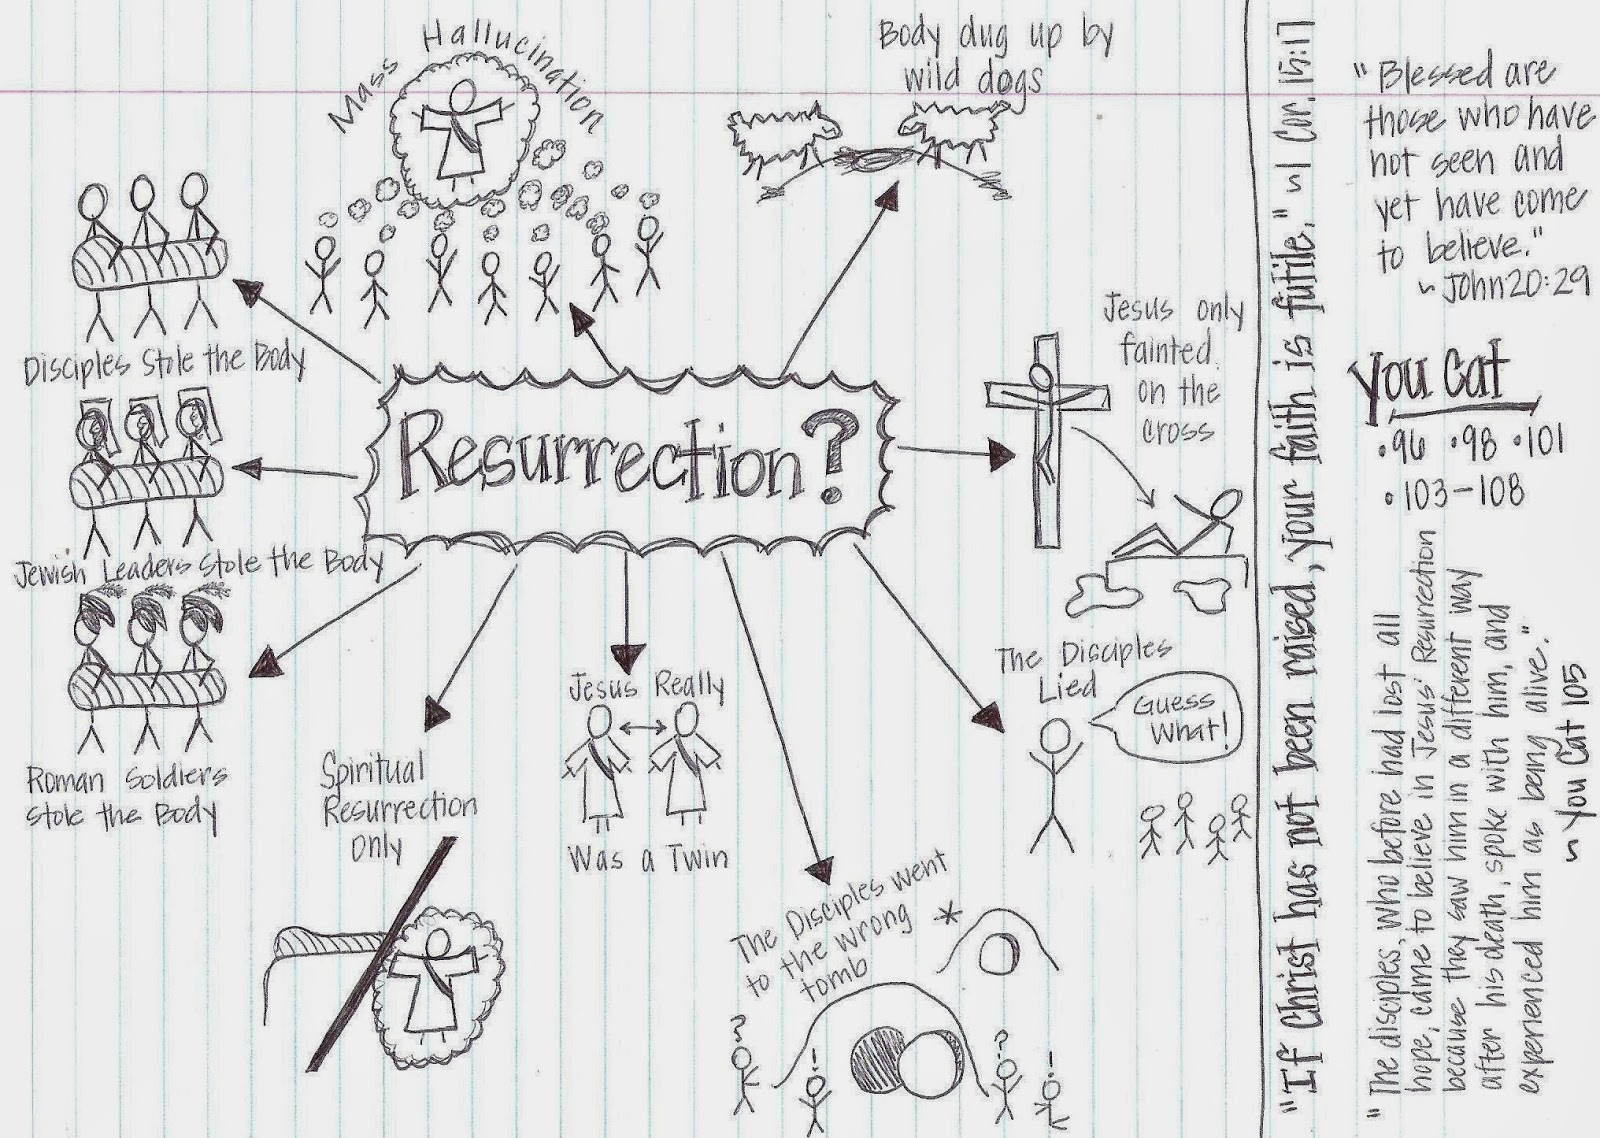 http://looktohimandberadiant.blogspot.com/2013/04/debunking-resurrection-theories.html